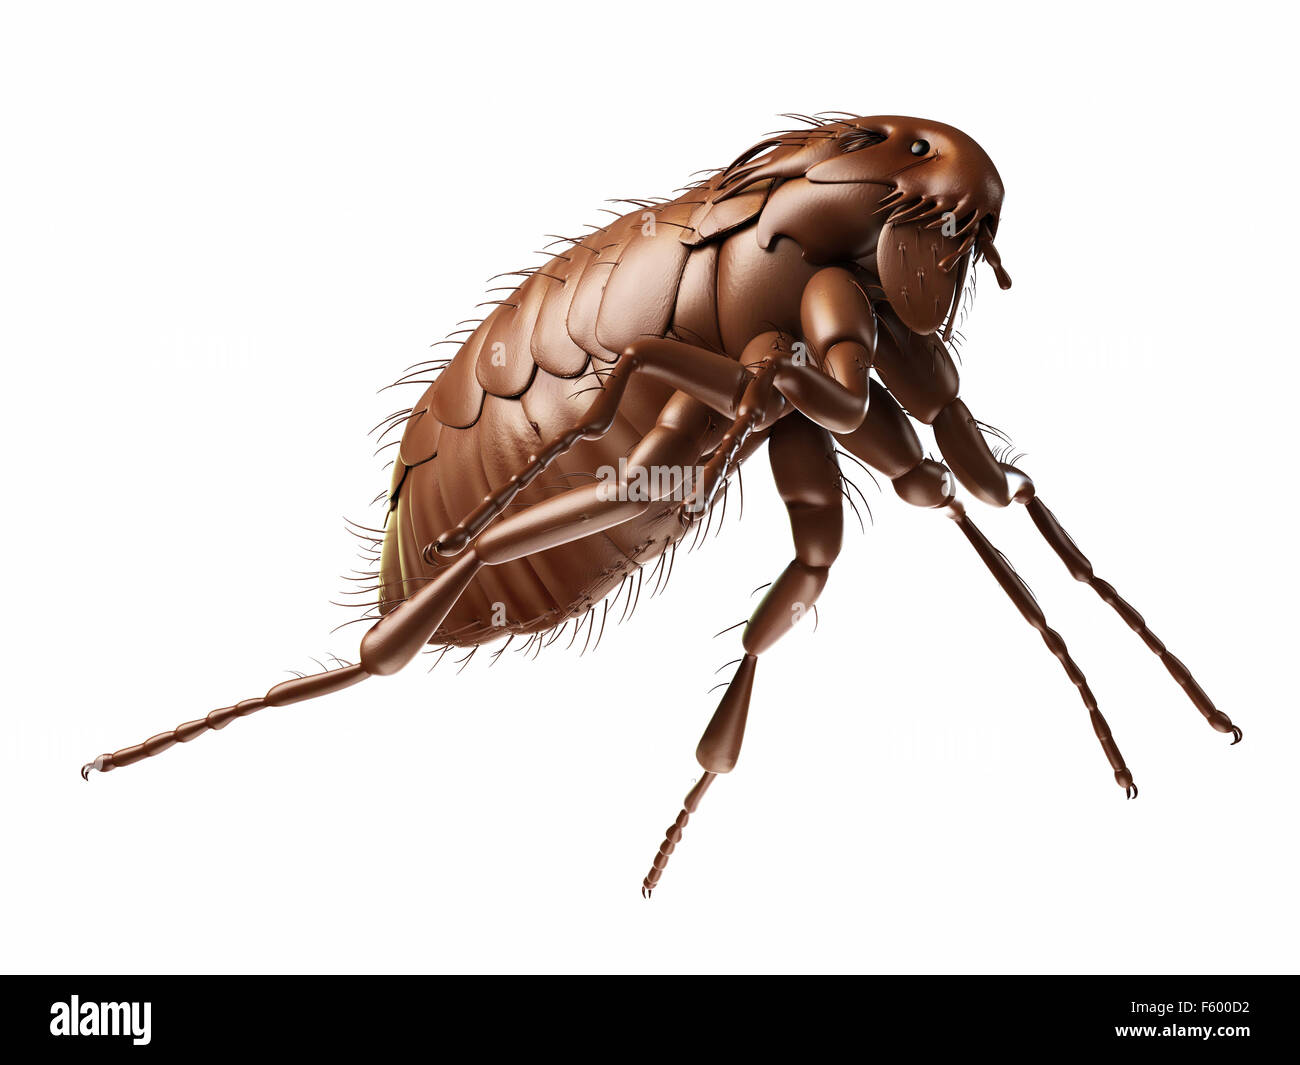 medically accurate illustration of a flea - Stock Image